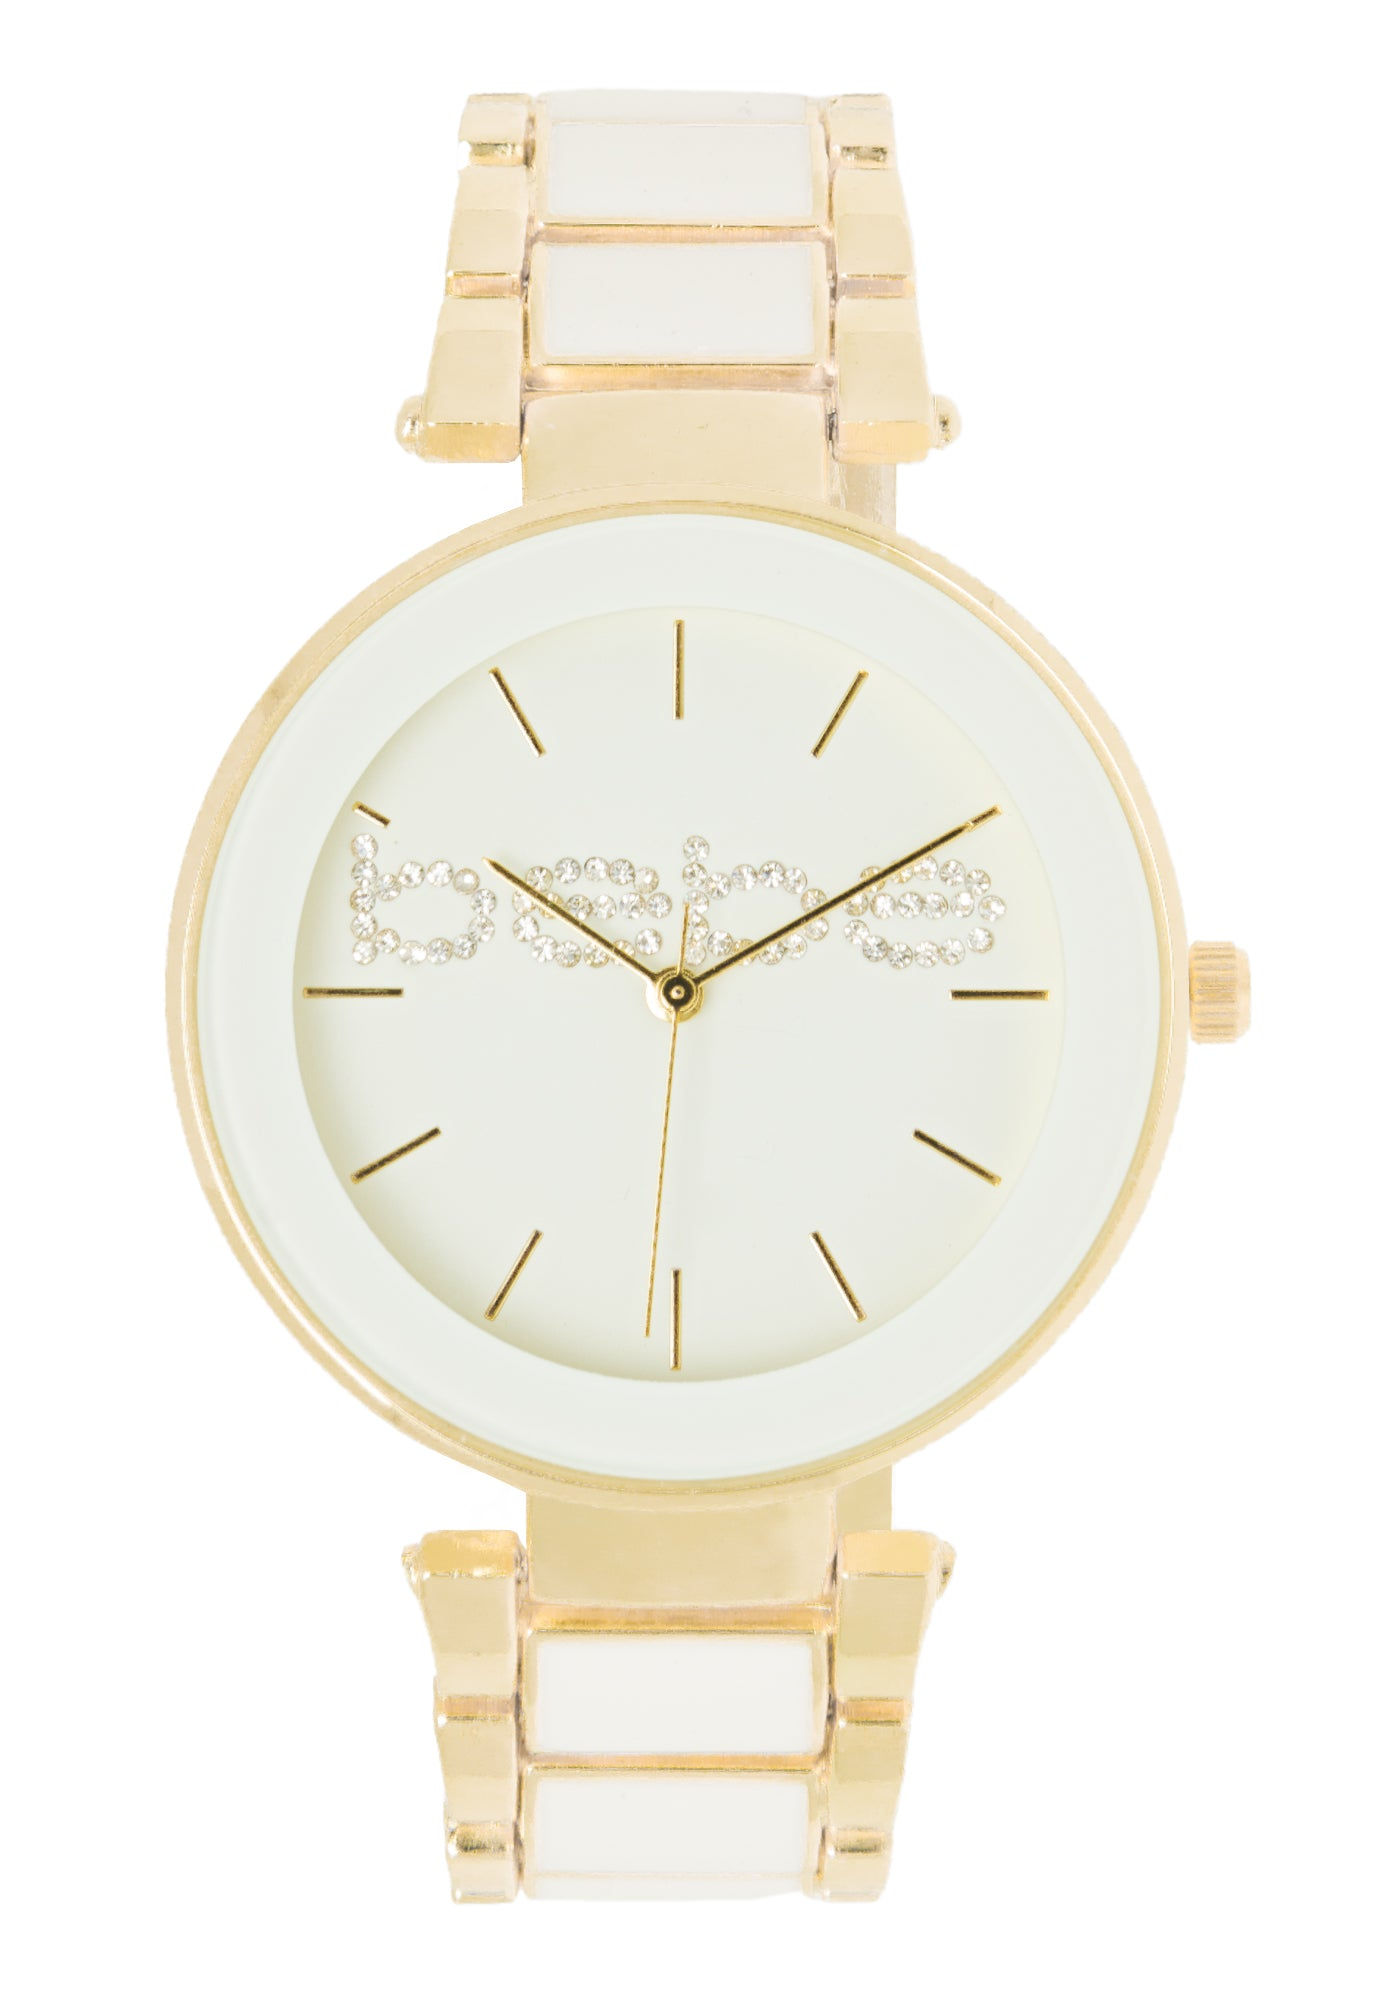 Bebe Women's Goldtone And White Watch in WHITE GOLD